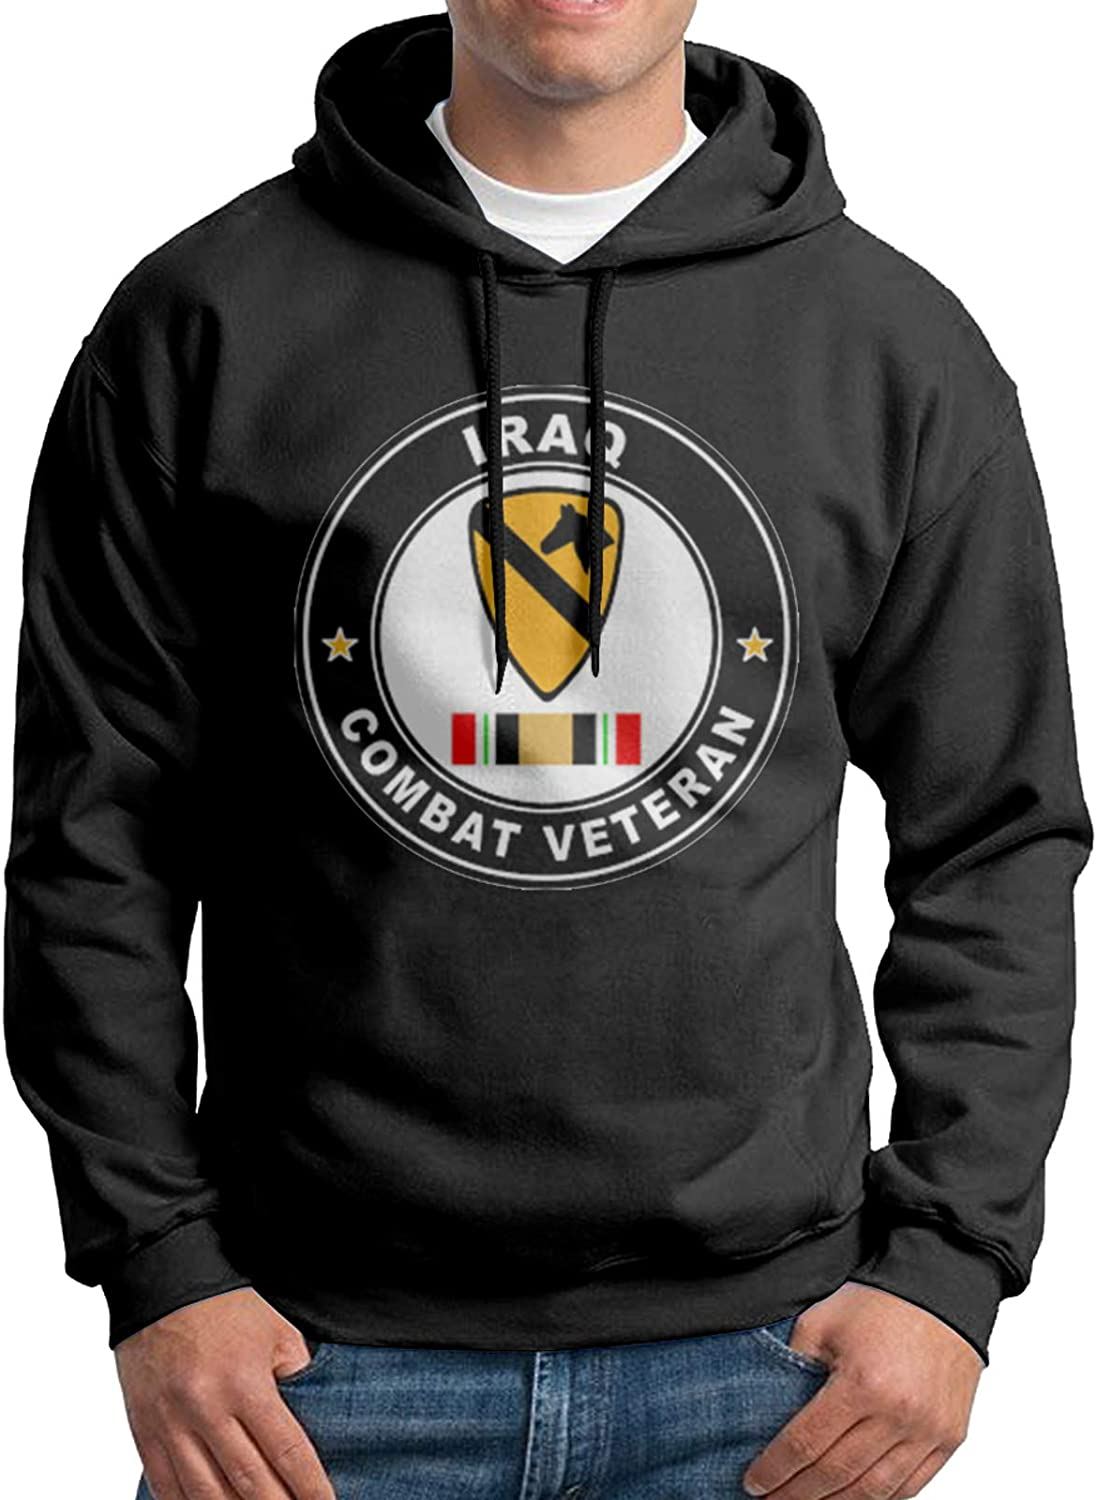 BSUUJCGF 1st Cavalry Division Iraq Combat Veteran Mens Jogging Breathable and Soft Hoodie Front Print Sportswear